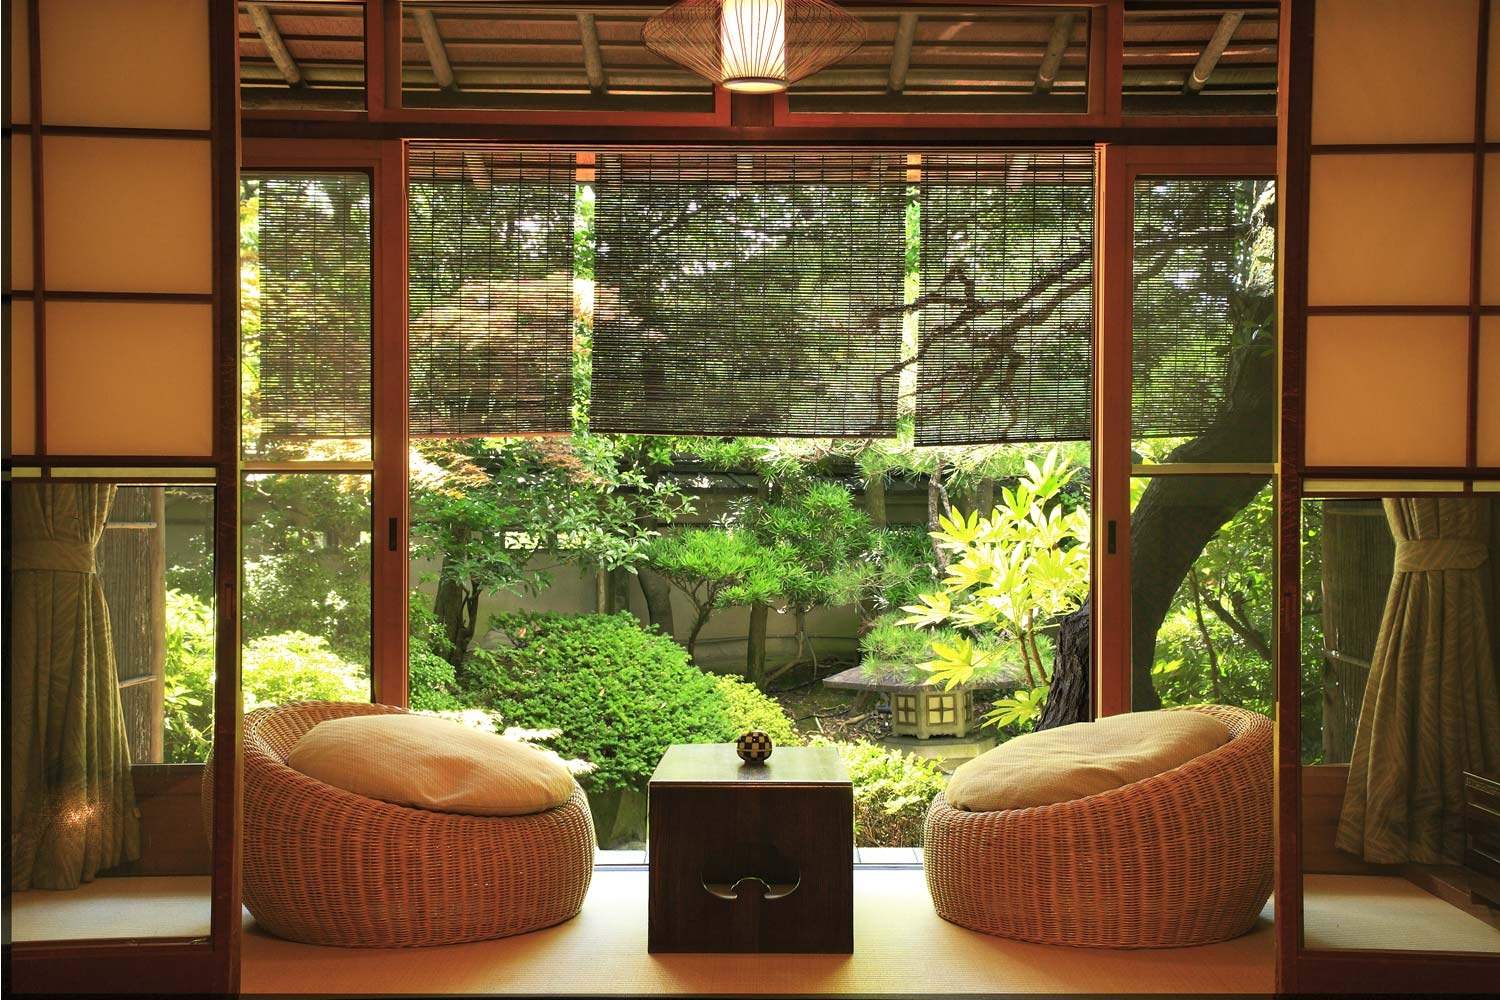 Zen garden room interior design ideas for House plans with garden room